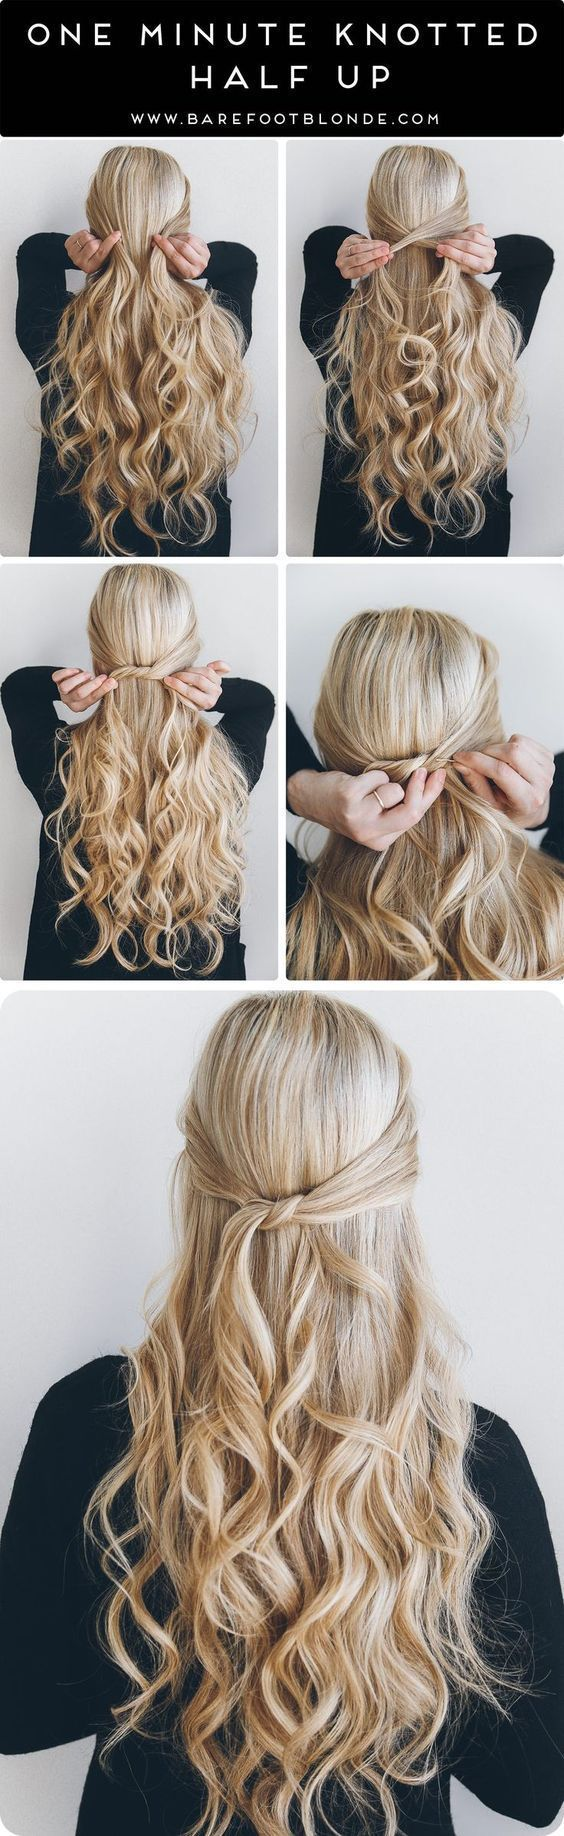 hair style best 25 popular hairstyles ideas on popular 7271